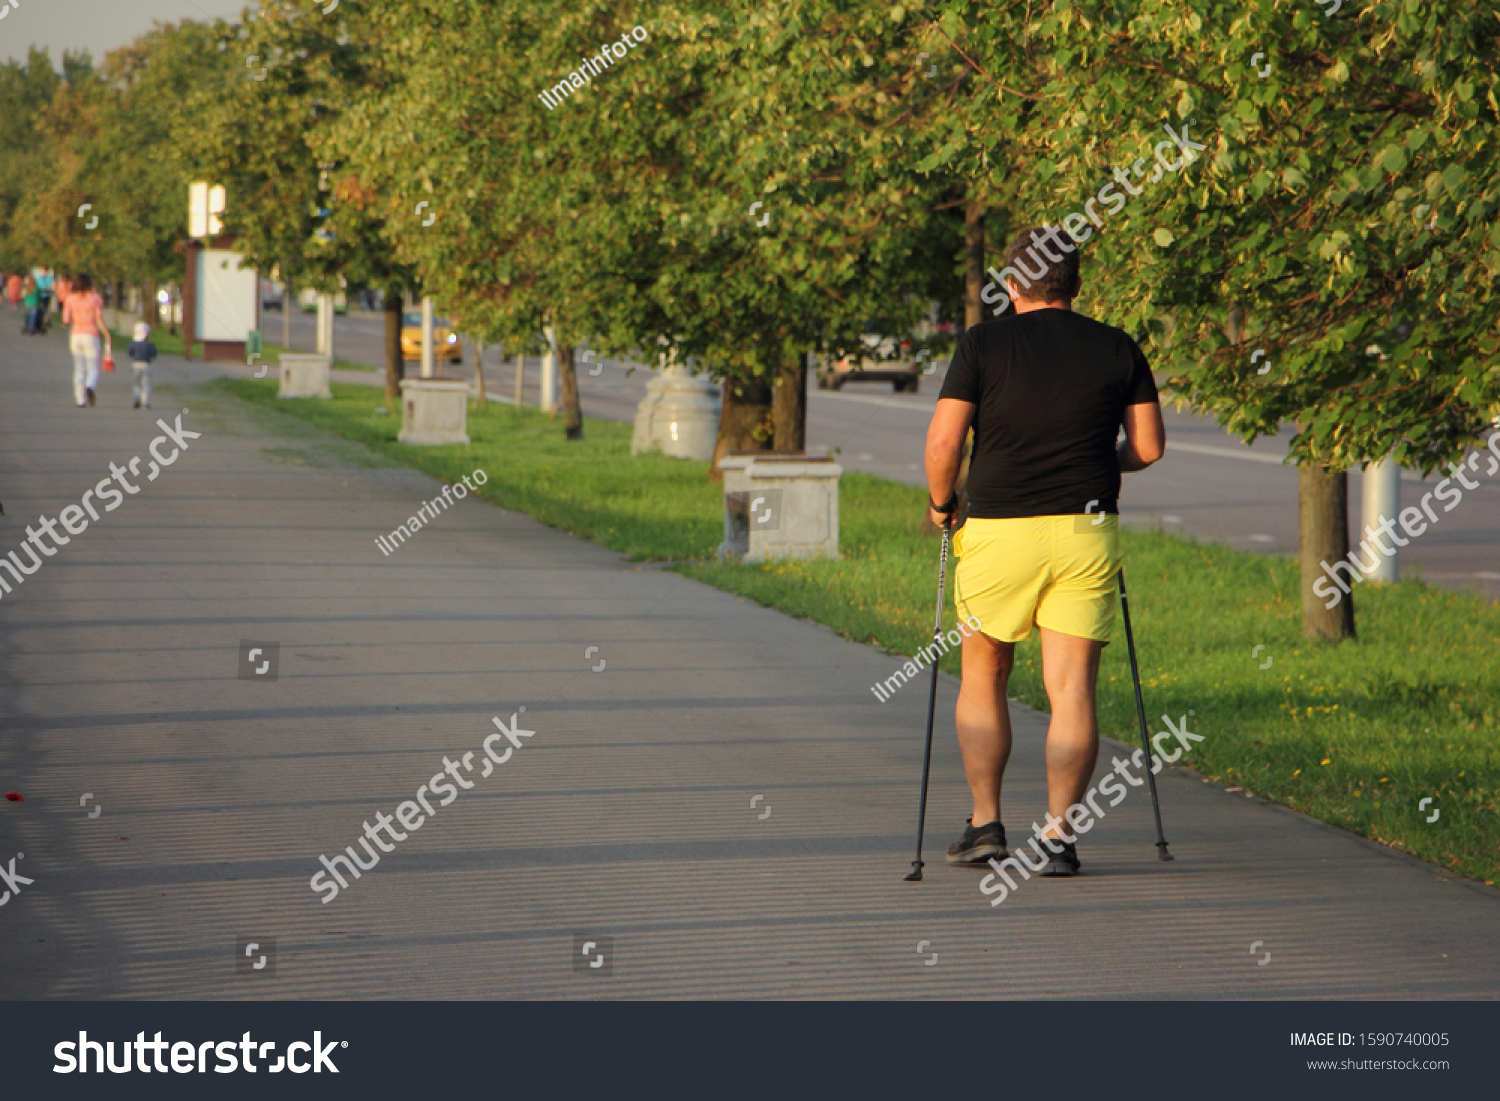 Nordic walking, man in black t-shirt and yellow shorts with ski poles walks through the Park alley on a summer day, back view against a trees background #1590740005